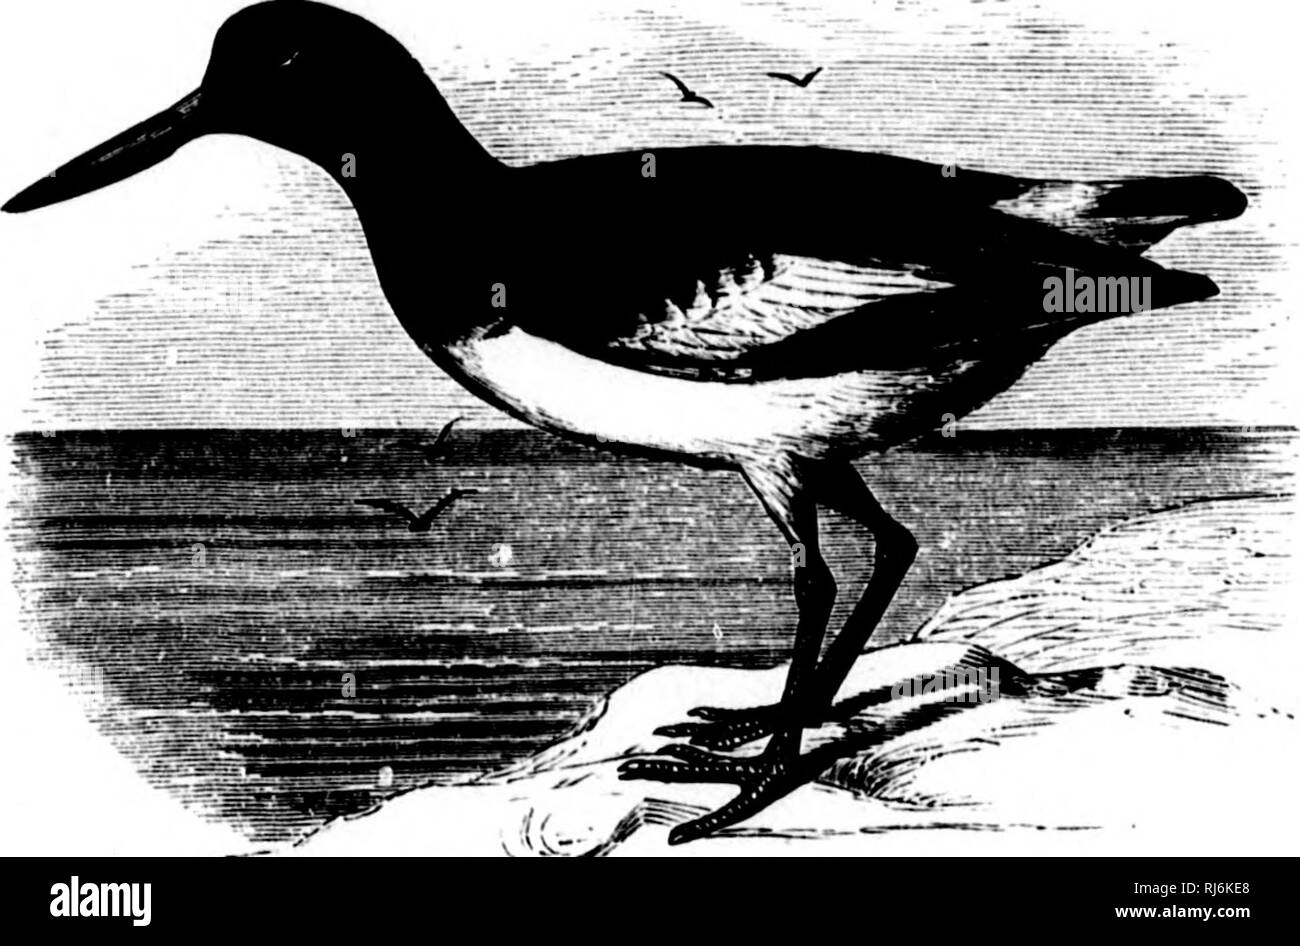 . The water birds of North America [microform]. Birds; Water-birds; Oiseaux; Oiseaux aquatiques. H/EMATOPODID.E — THE OYSTER CATCHERS — IT^E^IATOPUS. 109 crimson ; lejjs nnd feet (in life) purplish red. Wing, 9.80-10.25 ; culmen, 2.85-3.50 ; tarsus, 2.00-2.20 ; middle toe, 1.20-1.40. Hnb. Piilrcarctic rei,'ion, New Zealand, etc. 2. H. palllatuB. Rump brownish slate, like back and win; tarsus, 2.20; middle toe, 1.70-1.75; greatest depth of bill anterior to nostril, .60. Hah. Pacific coast of South America. Var. ater} In this species, or race, according to authors, the iris is yellow, eyelids re - Stock Image